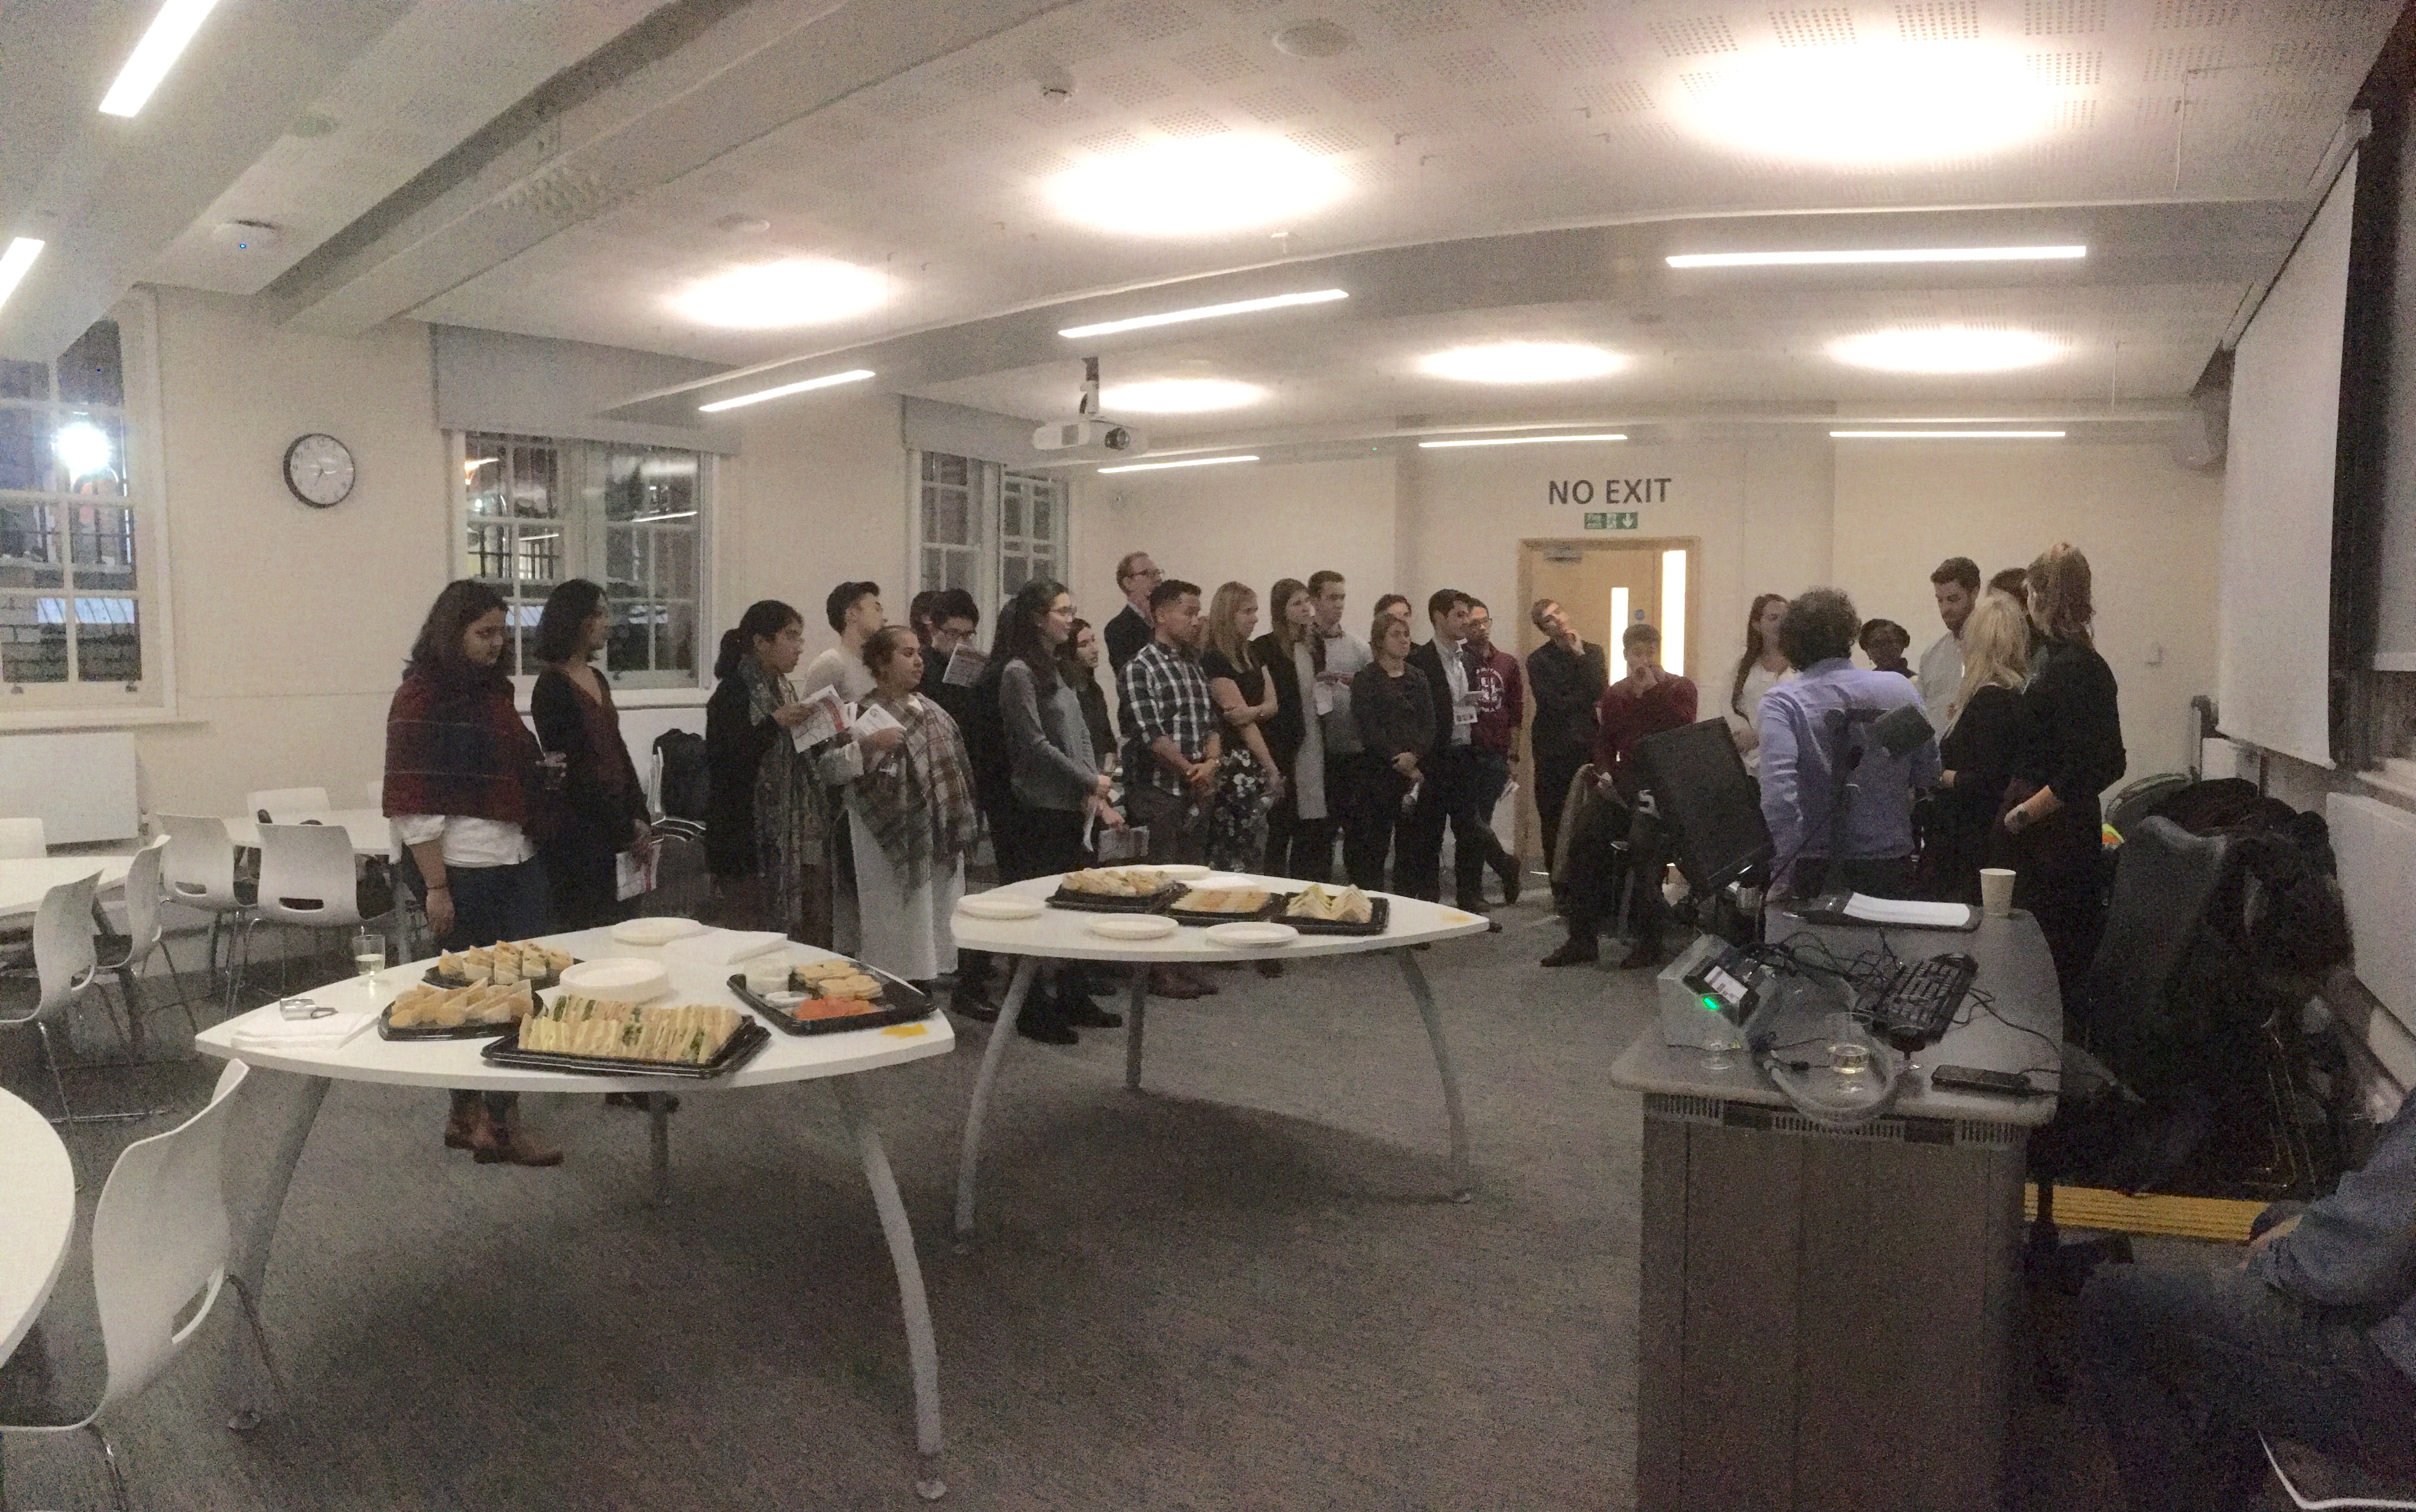 MSc Urbanisation and Development Careers Evening, 4 November 2016 (Photograph courtesy of Hyun Bang Shin)